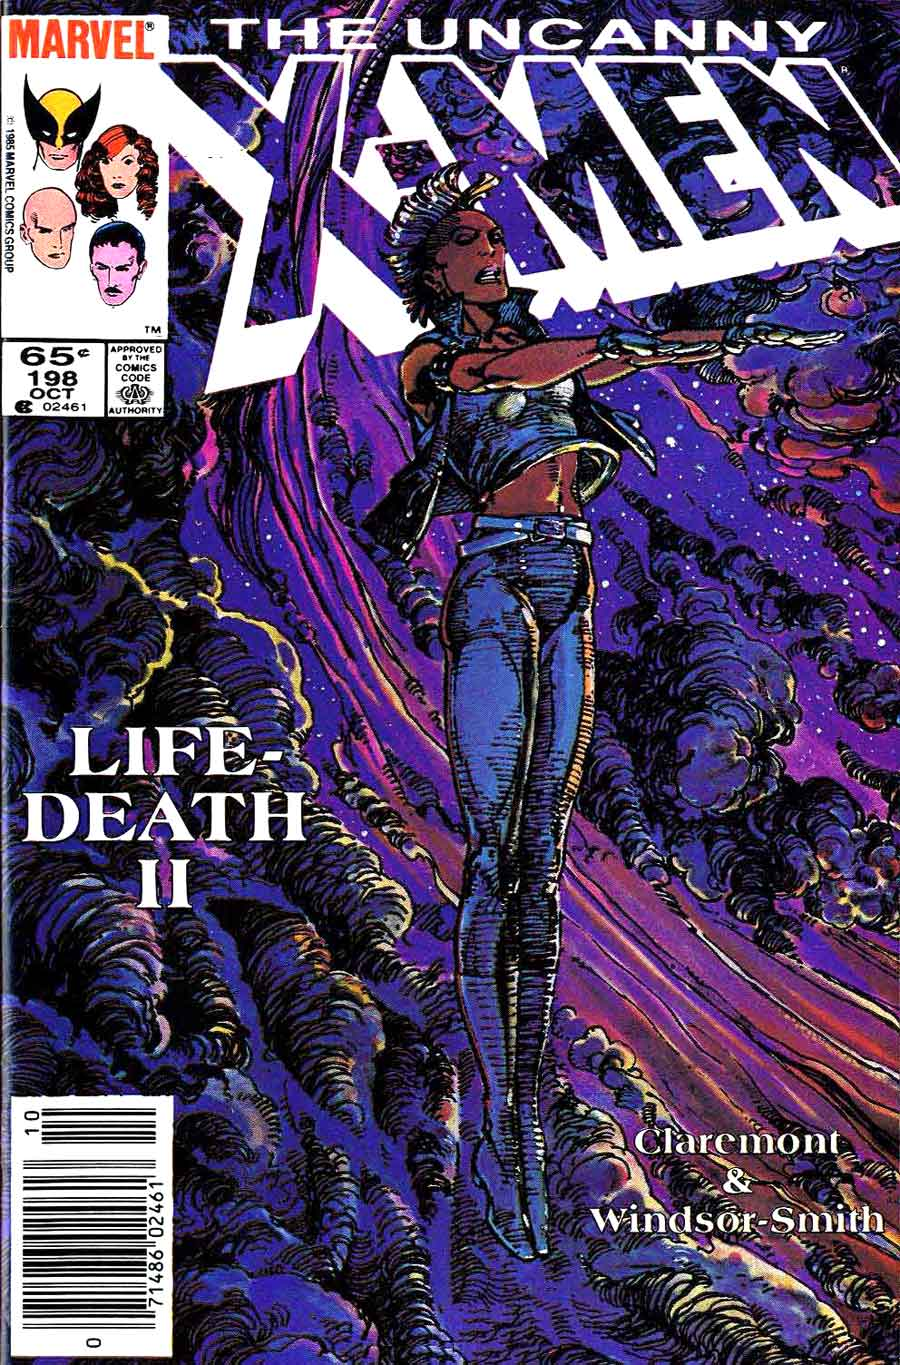 X-men v1 #198 marvel comic book cover art by Barry Windsor Smith